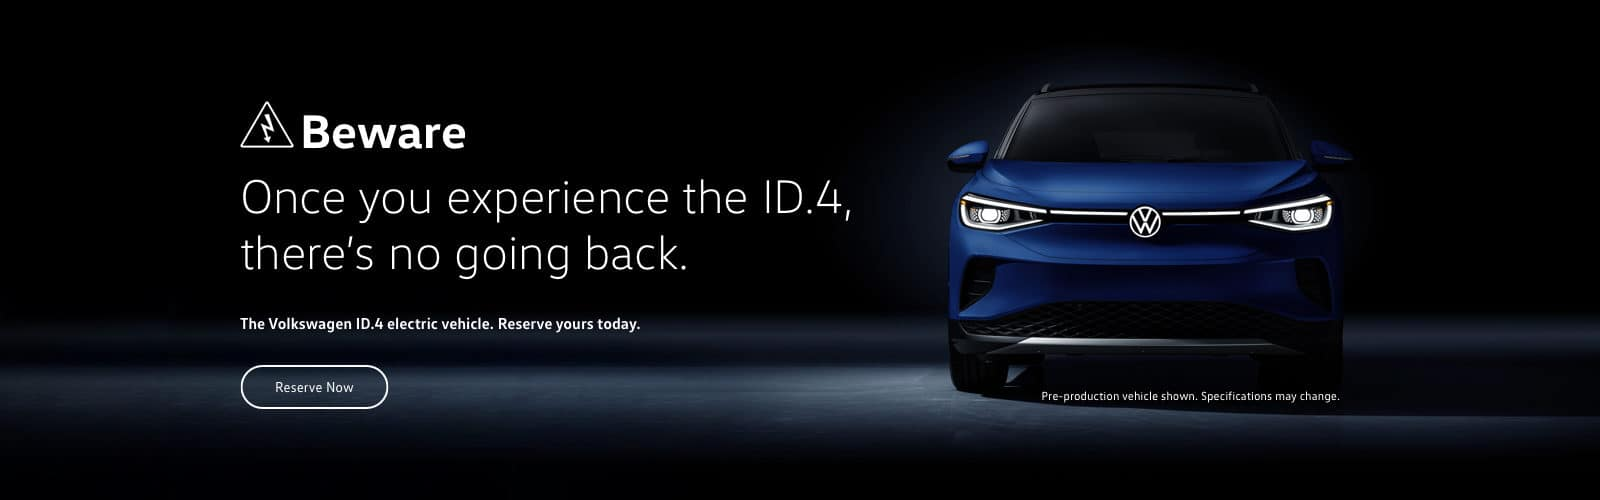 VW_IID4Reveal_Homepage_T3_Dealer.com_1600x500